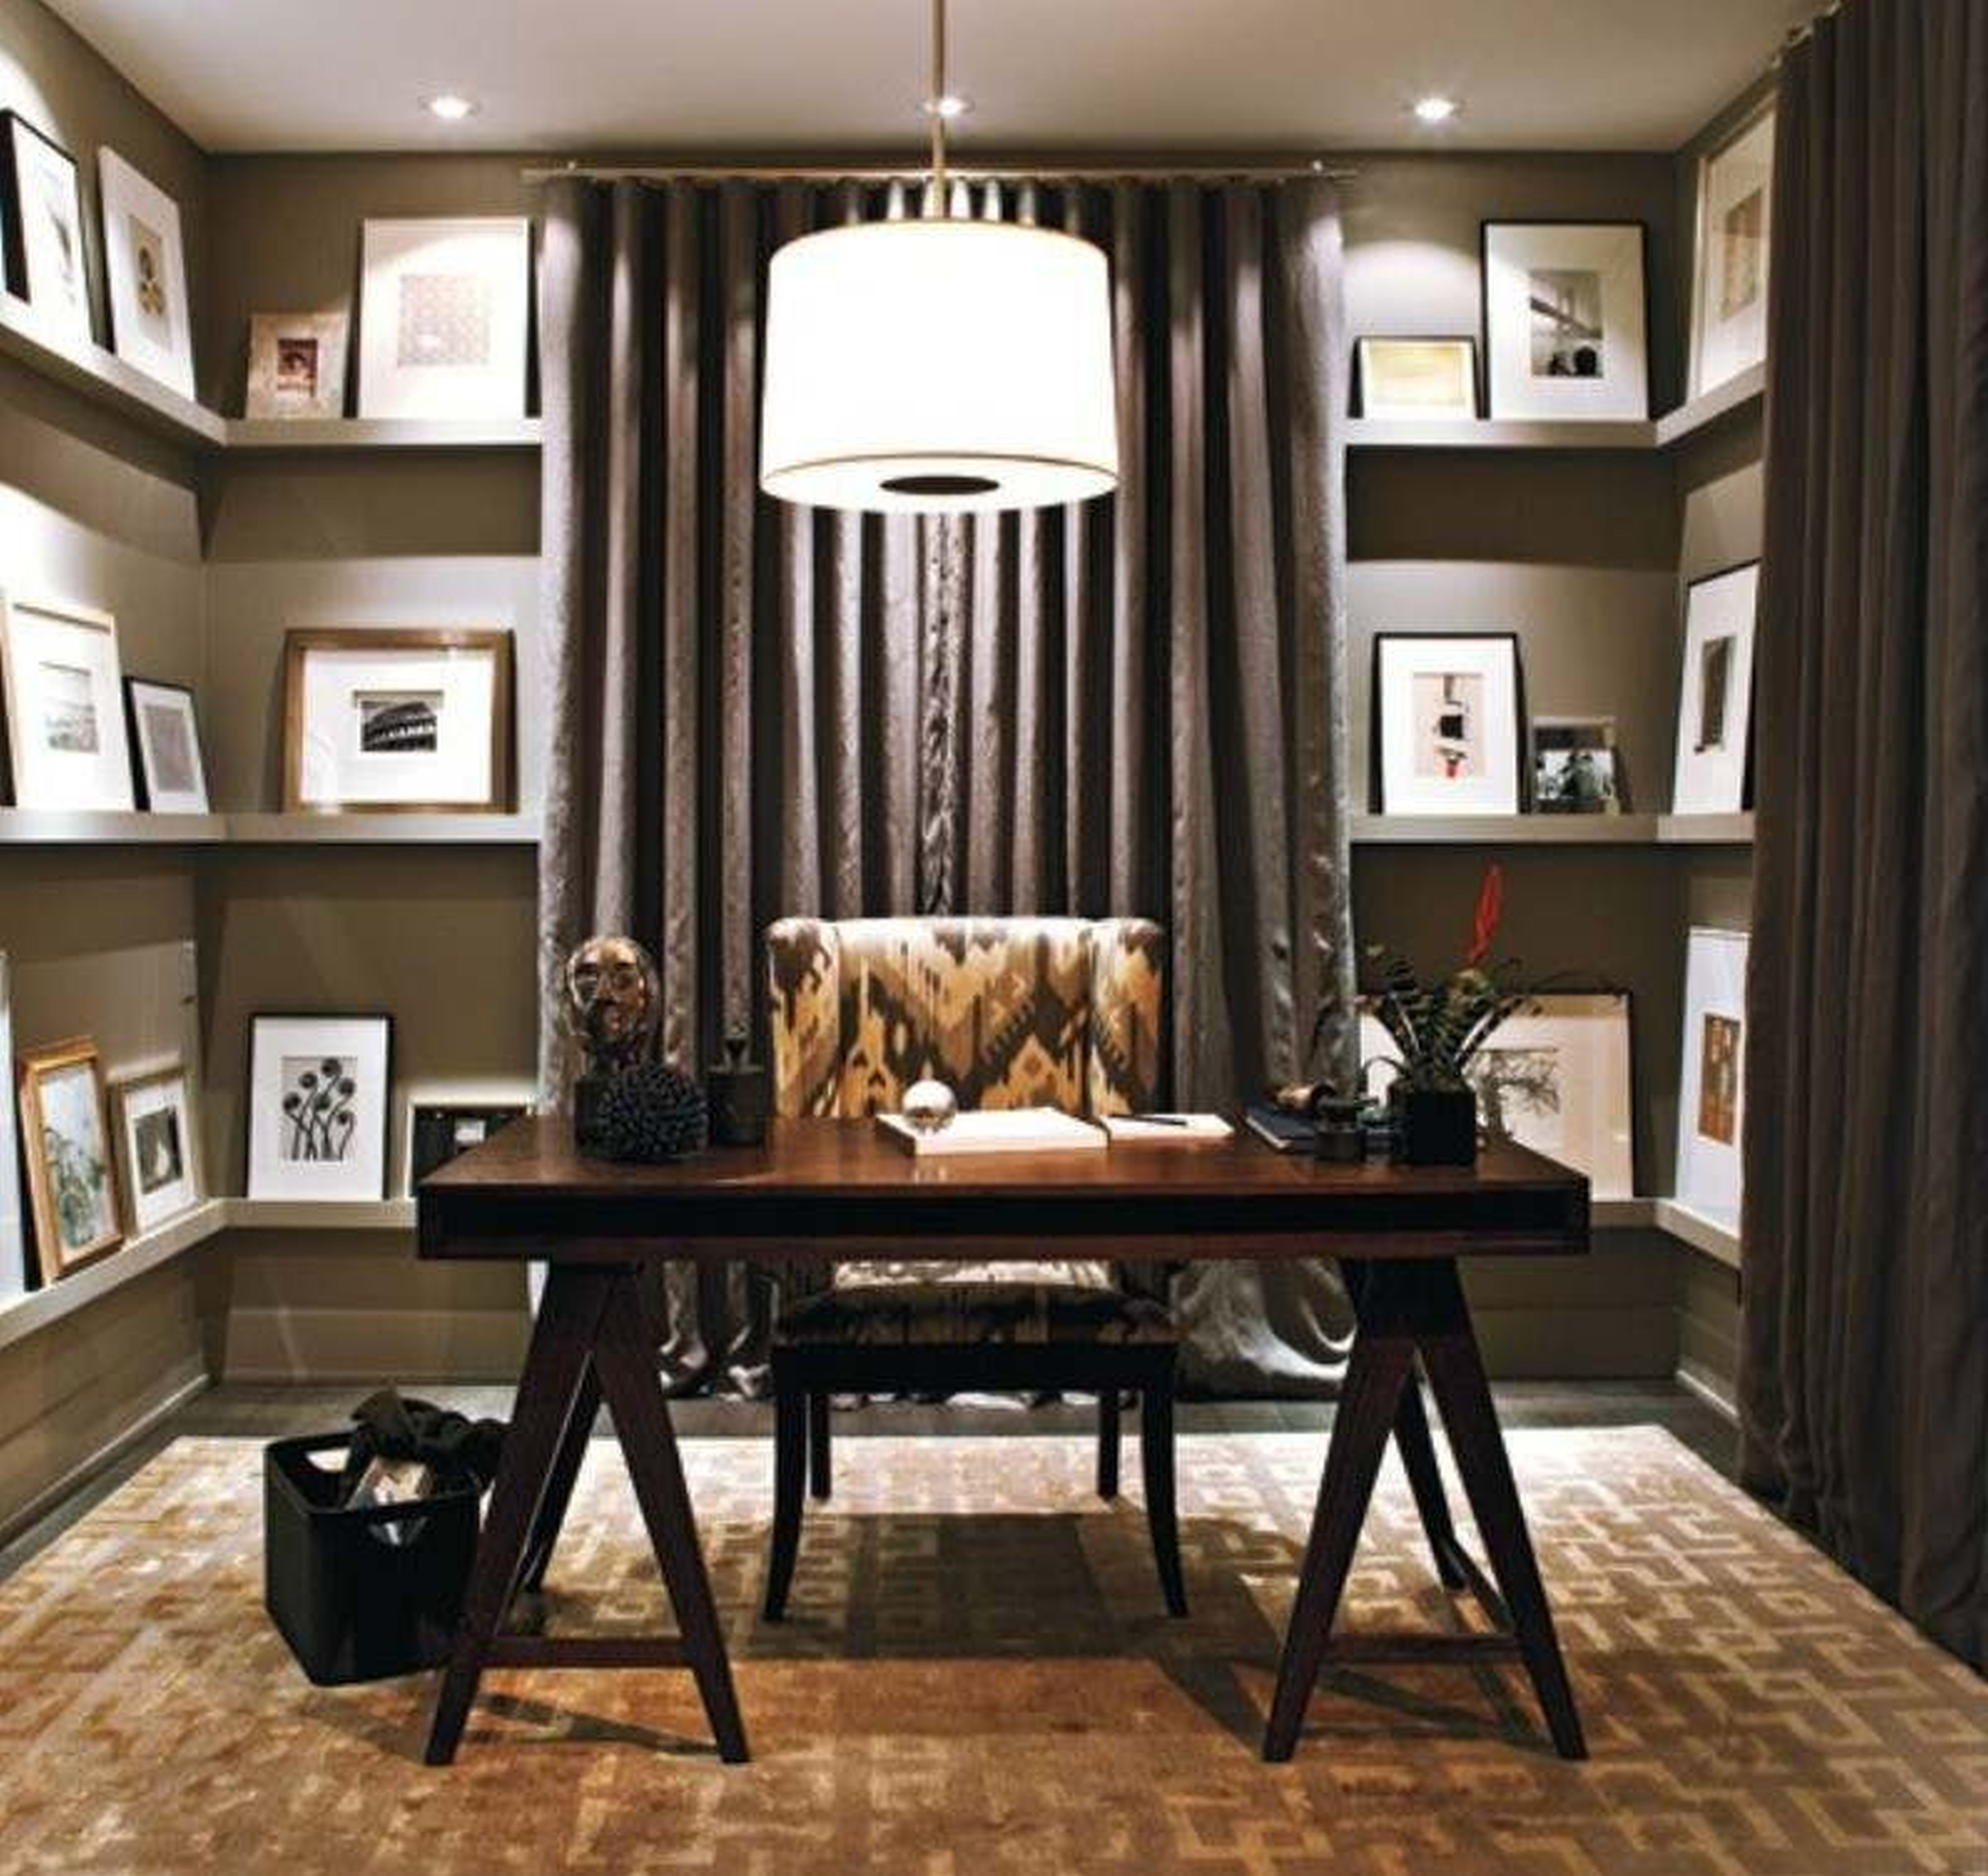 Wonderfull Home Office Decor Ideas Decorating Office Space